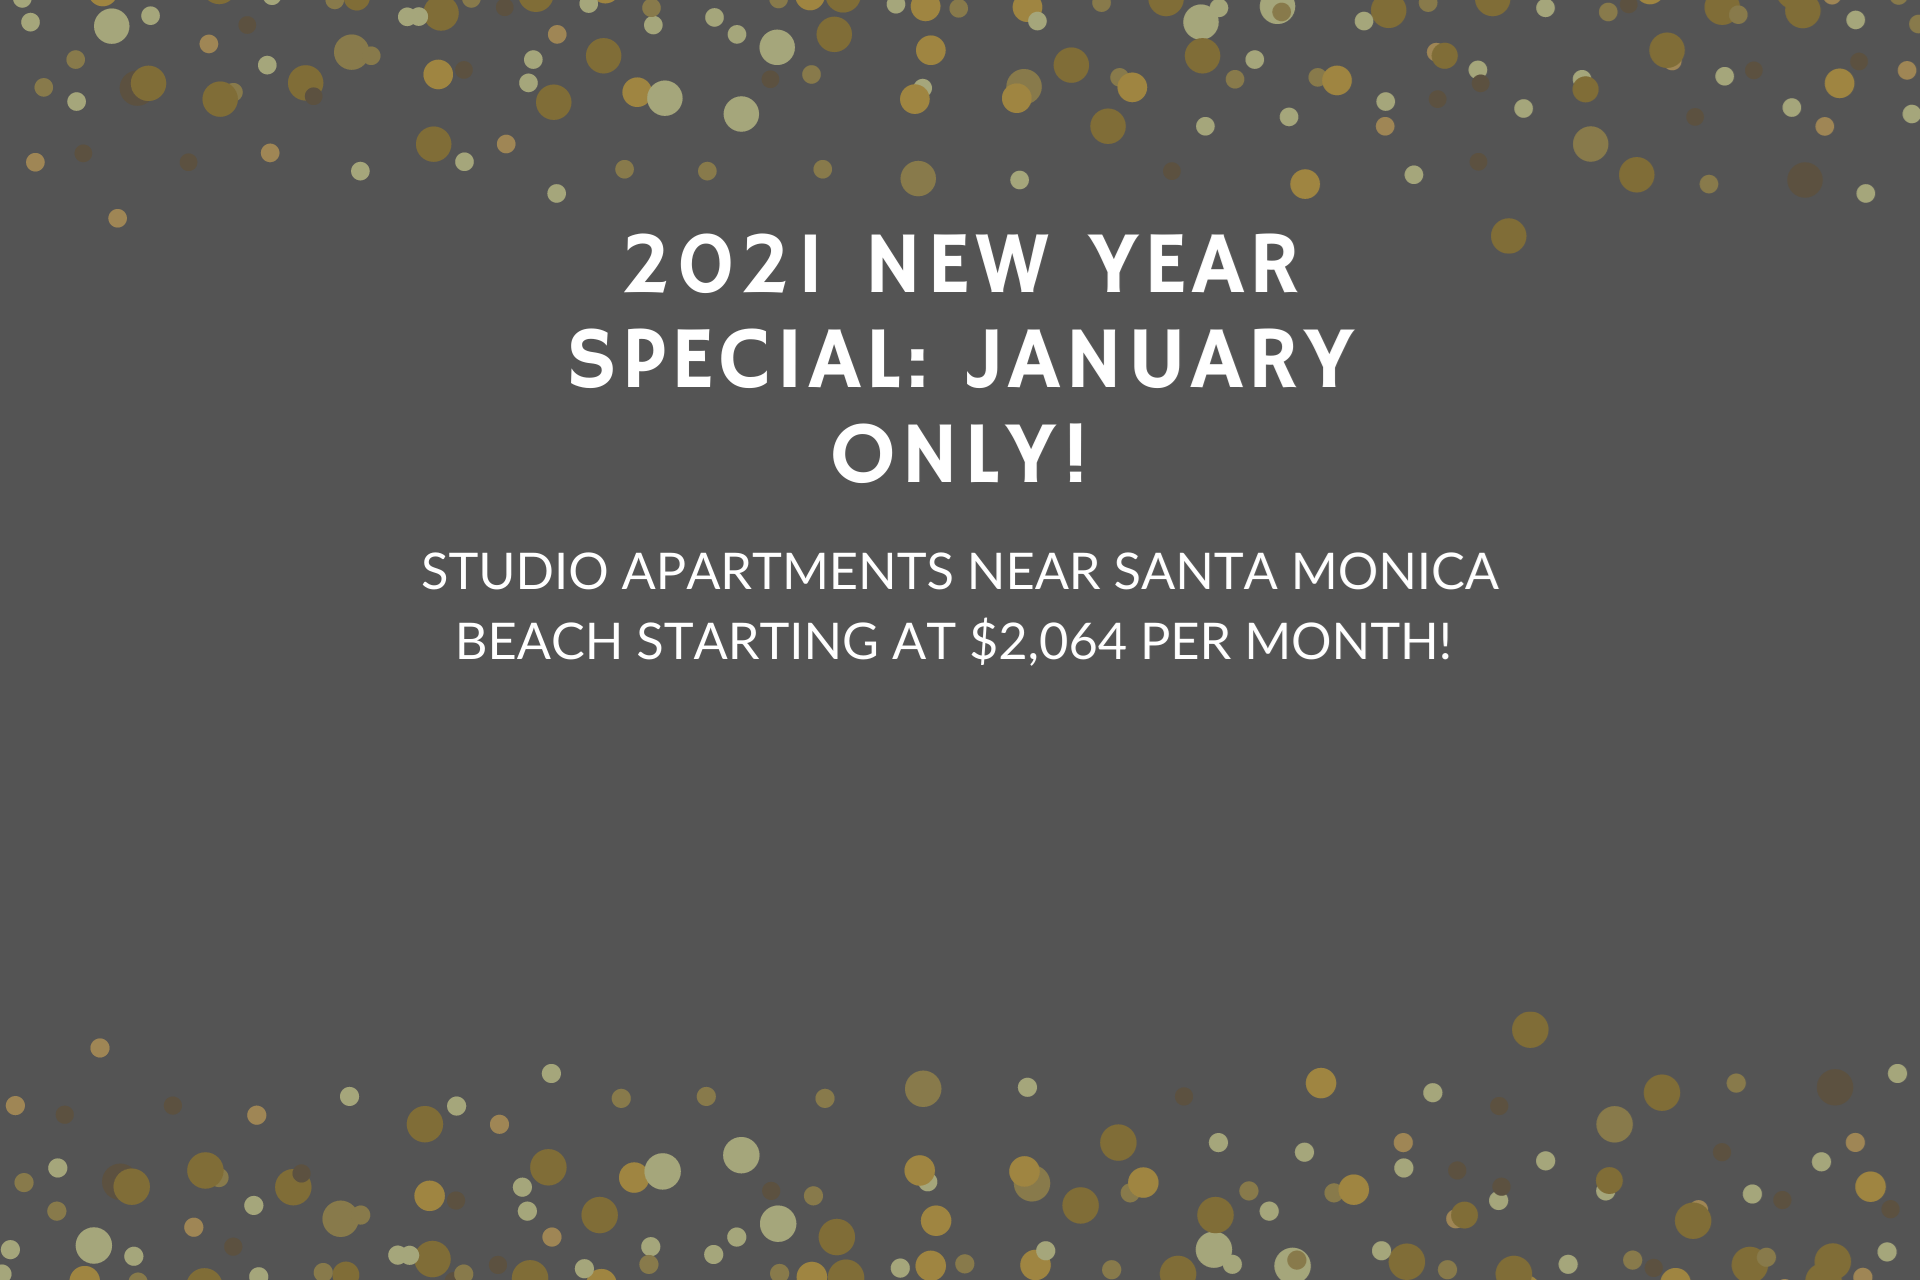 New-Years-Santa-Monica-Affordable-Apartments-Leasing-Special (3).png